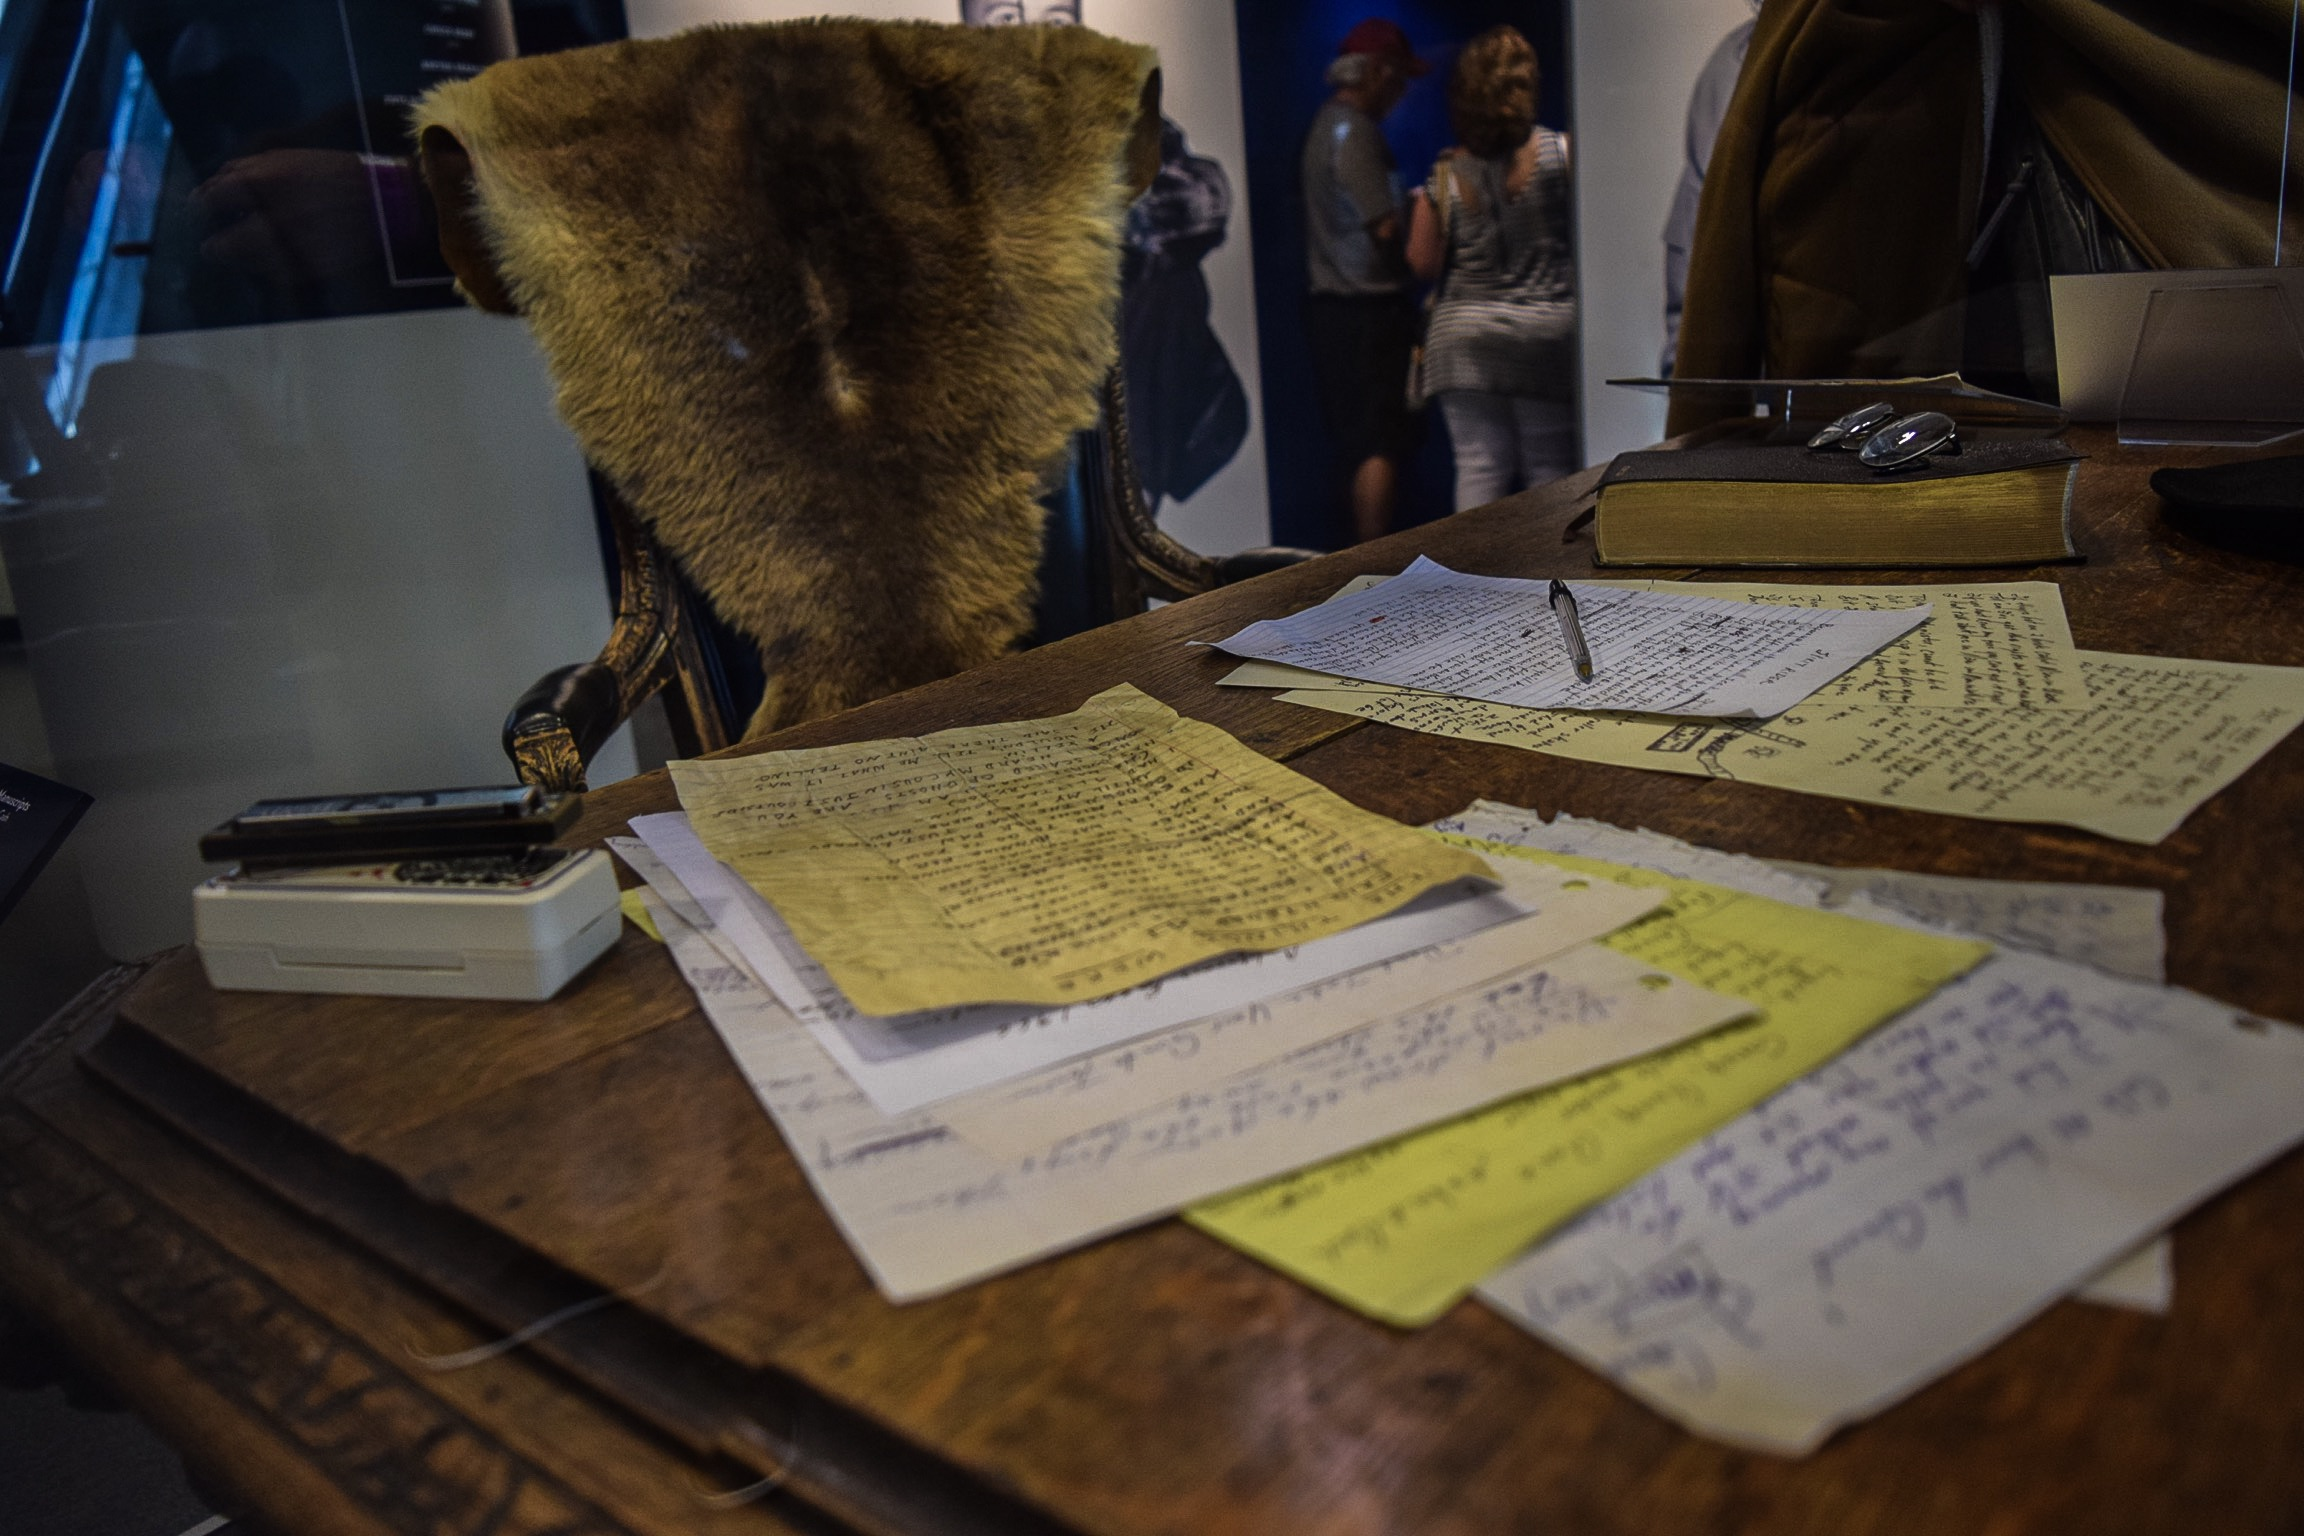 Just part of the collection: Johnny Cash's writing desk, along with contracts, letters, and his harmonica.